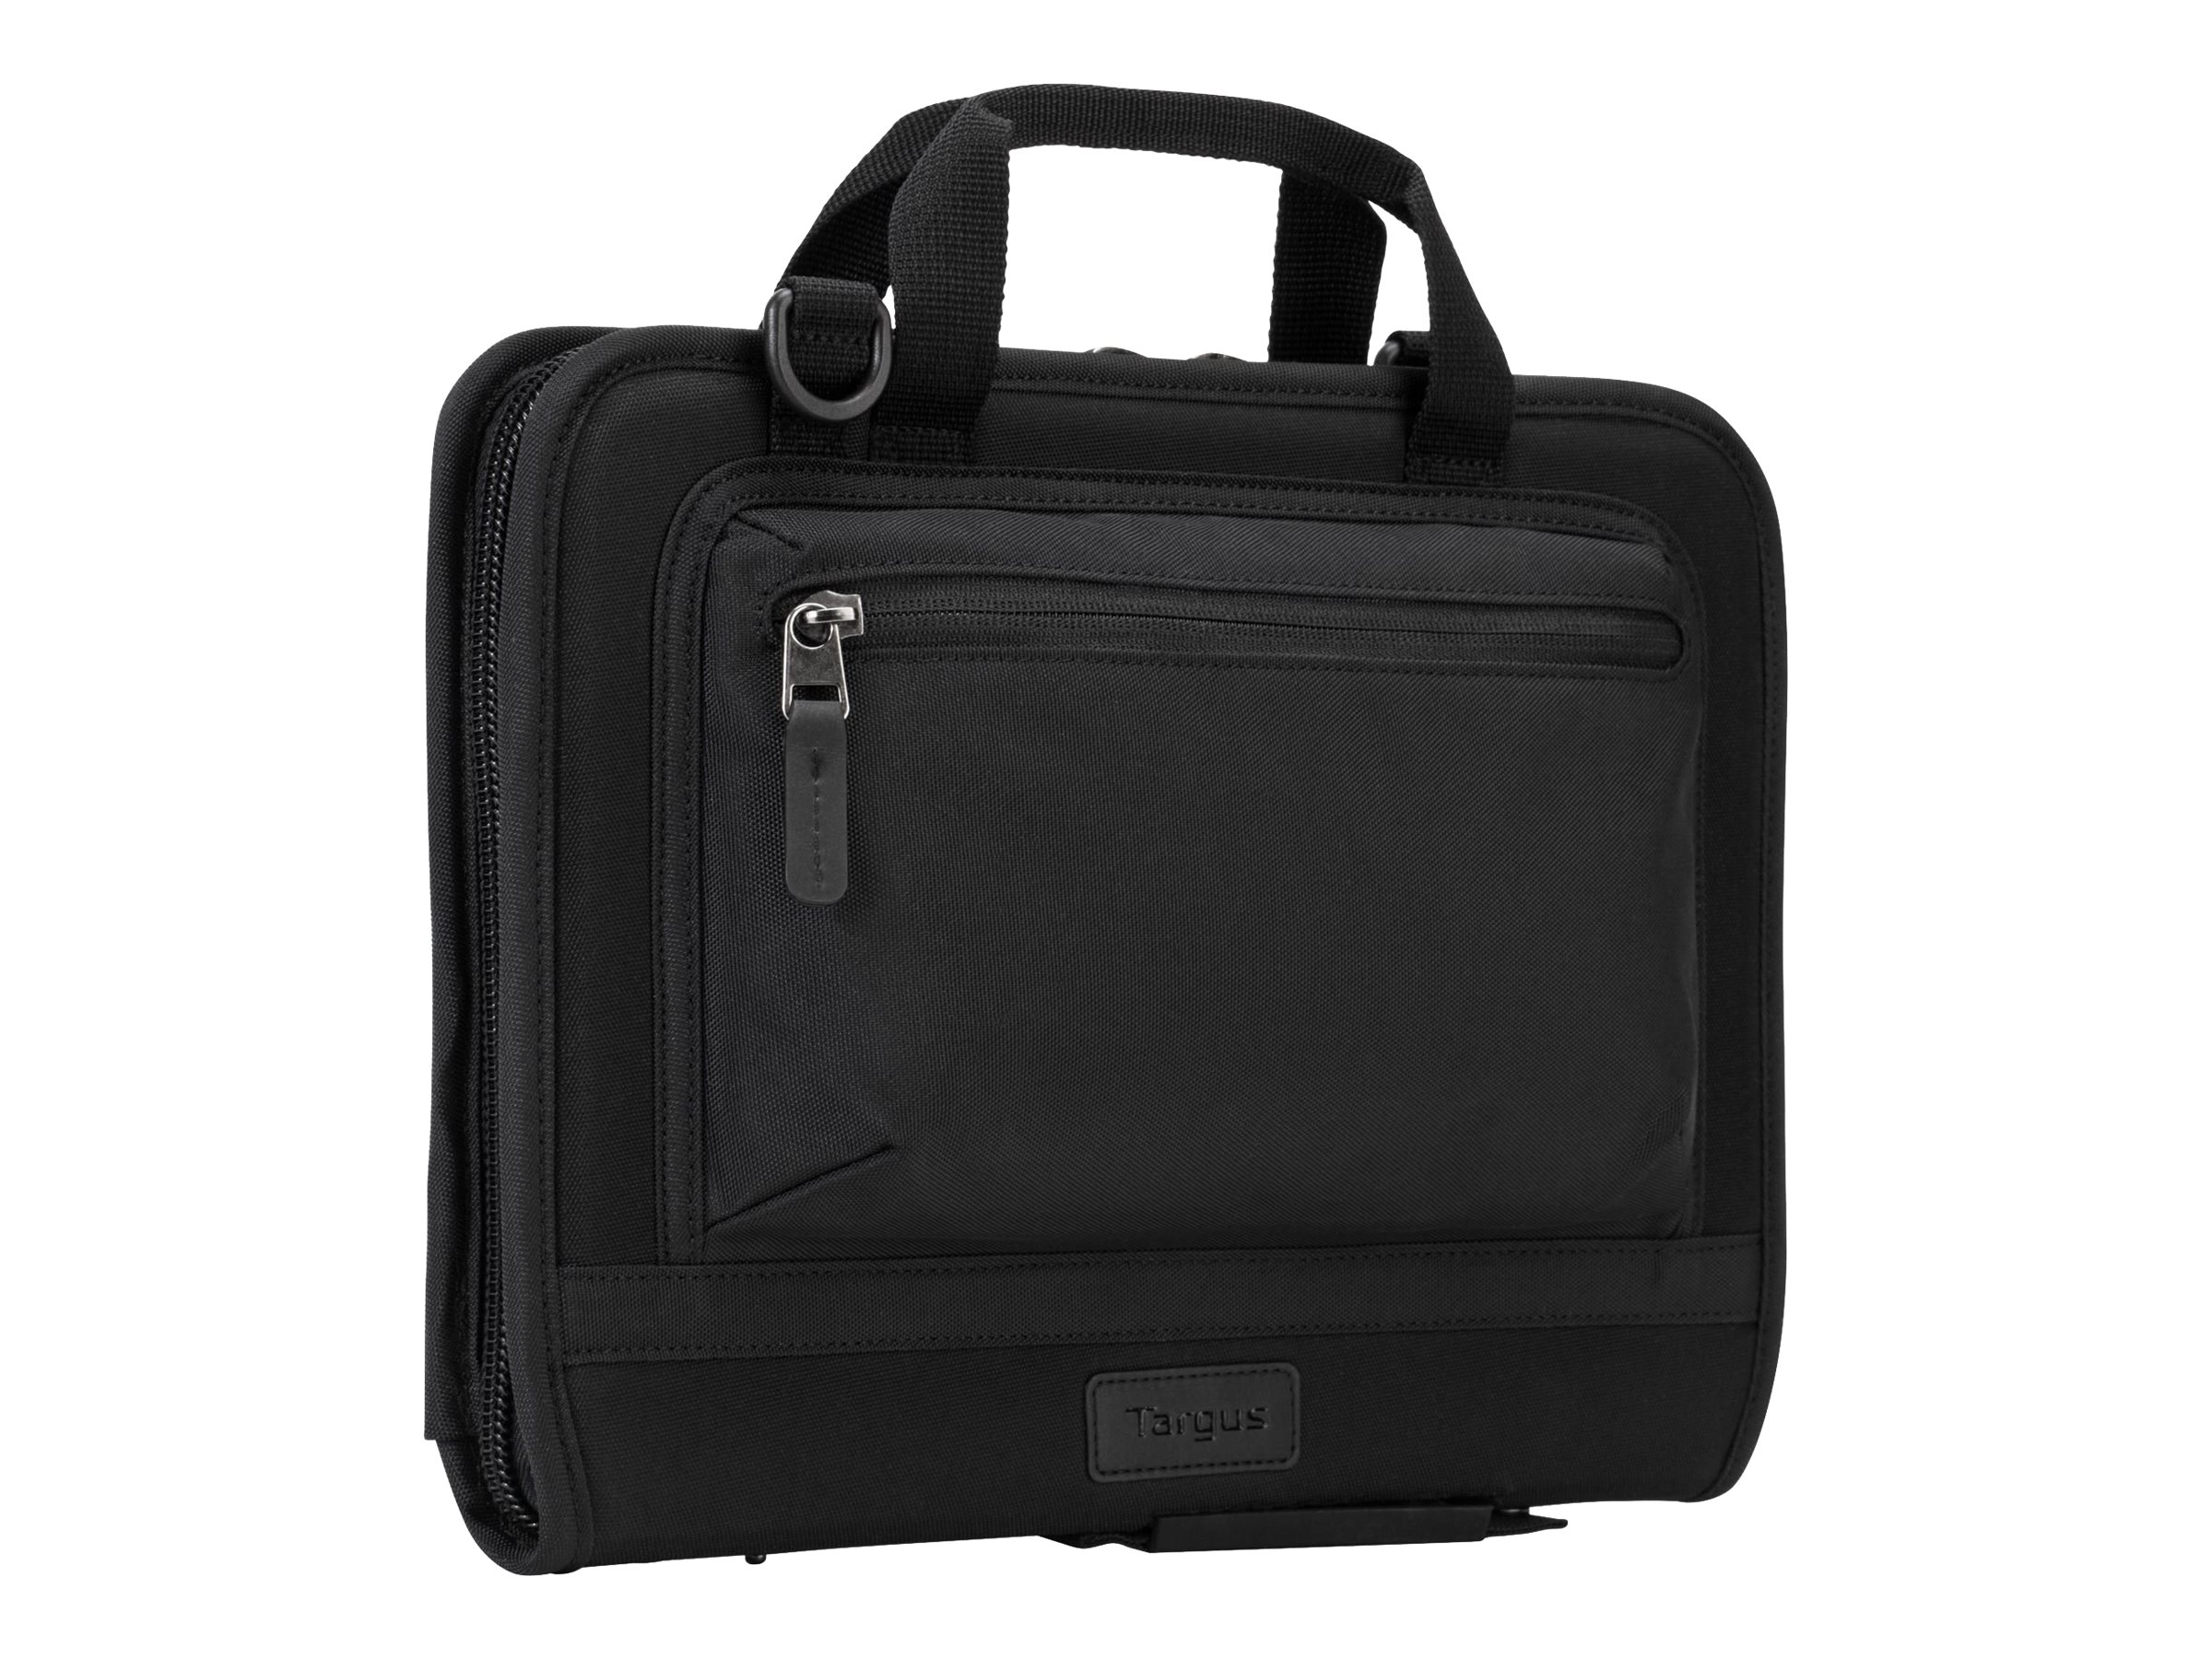 Targus Rugged Chromebook Lift Work-In Case, Black